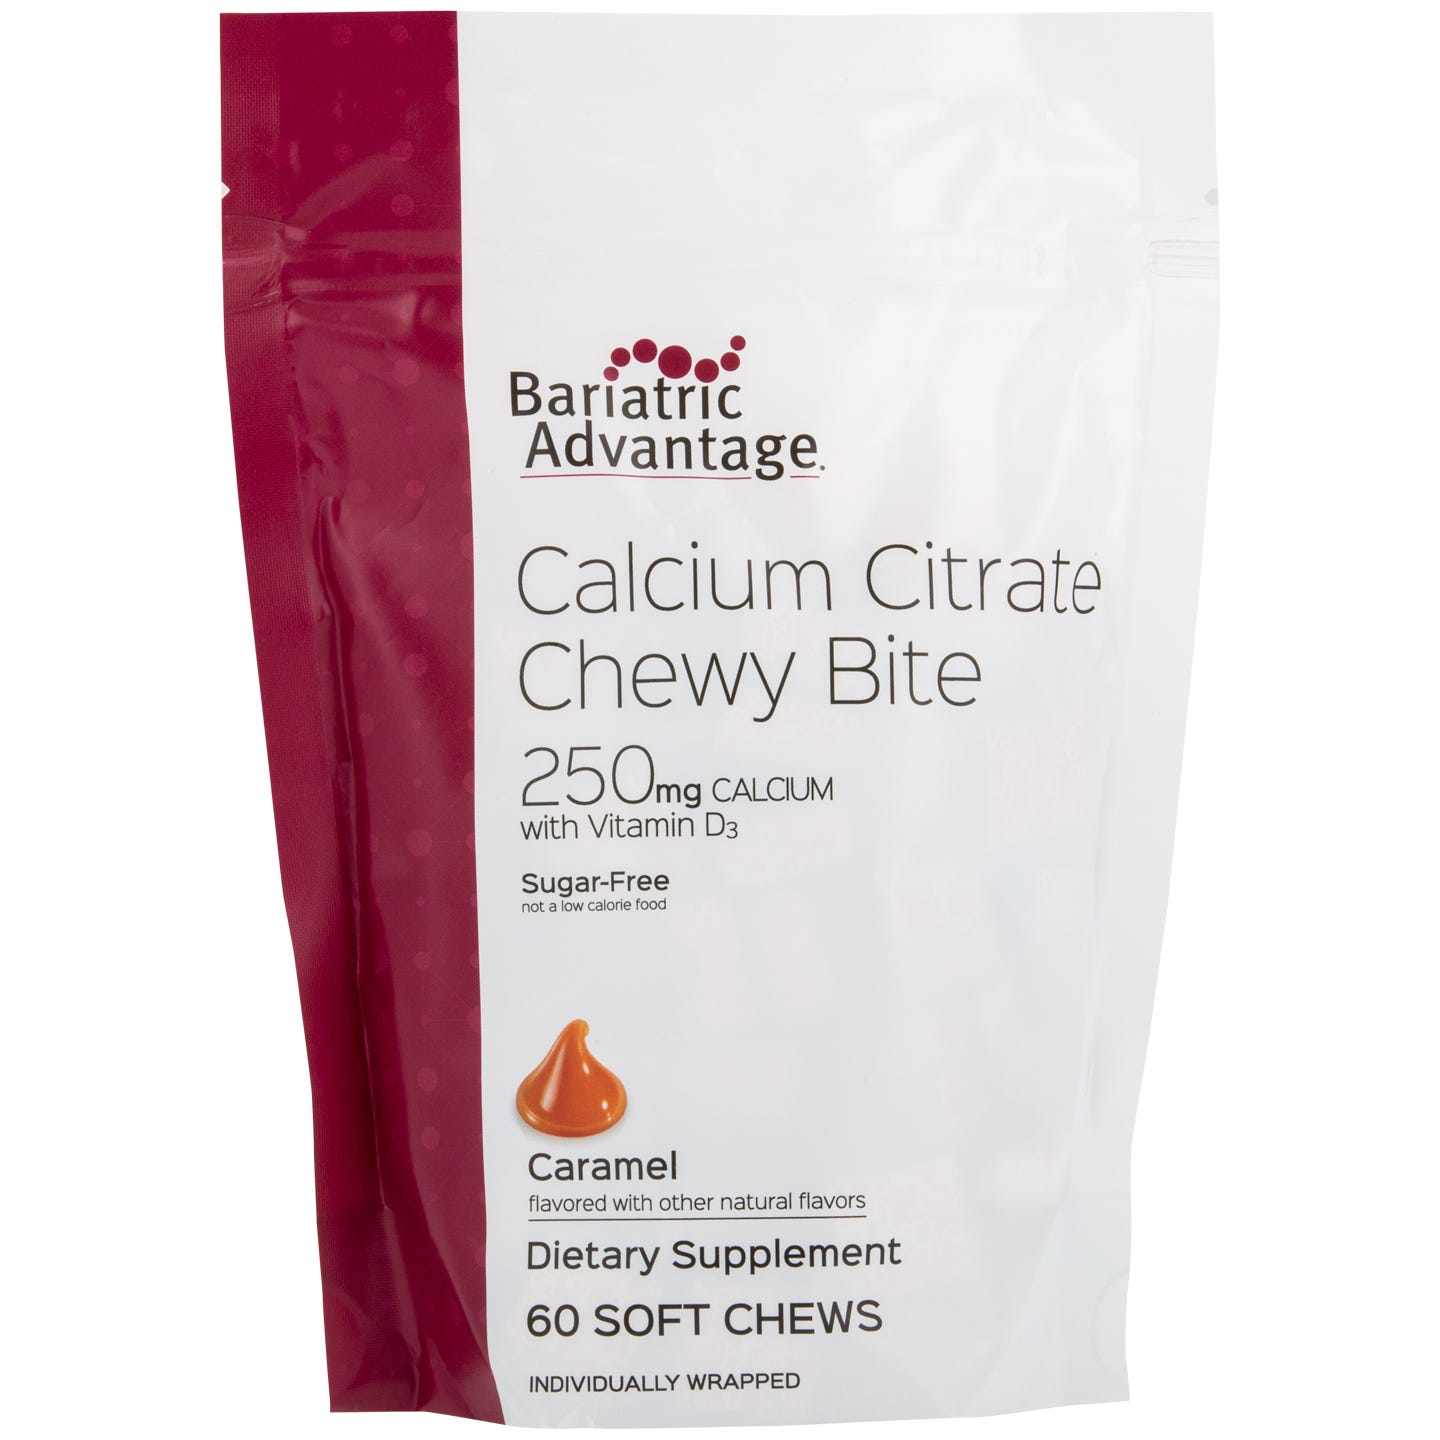 Bariatric Advantage 250mg Calcium Citrate Chewy Bites, Caramel (60ct)